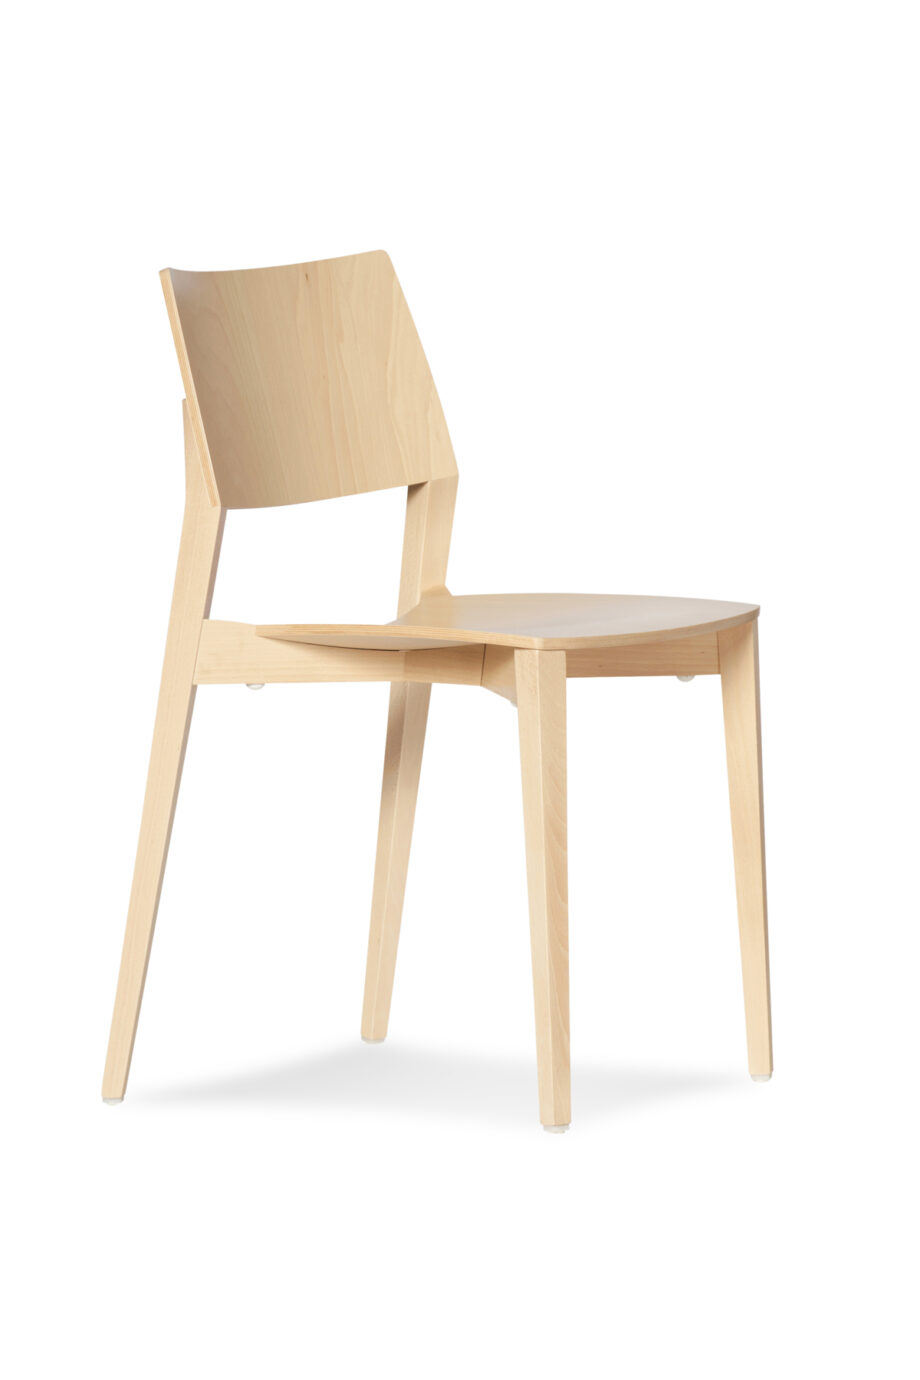 Gregory Battista chair